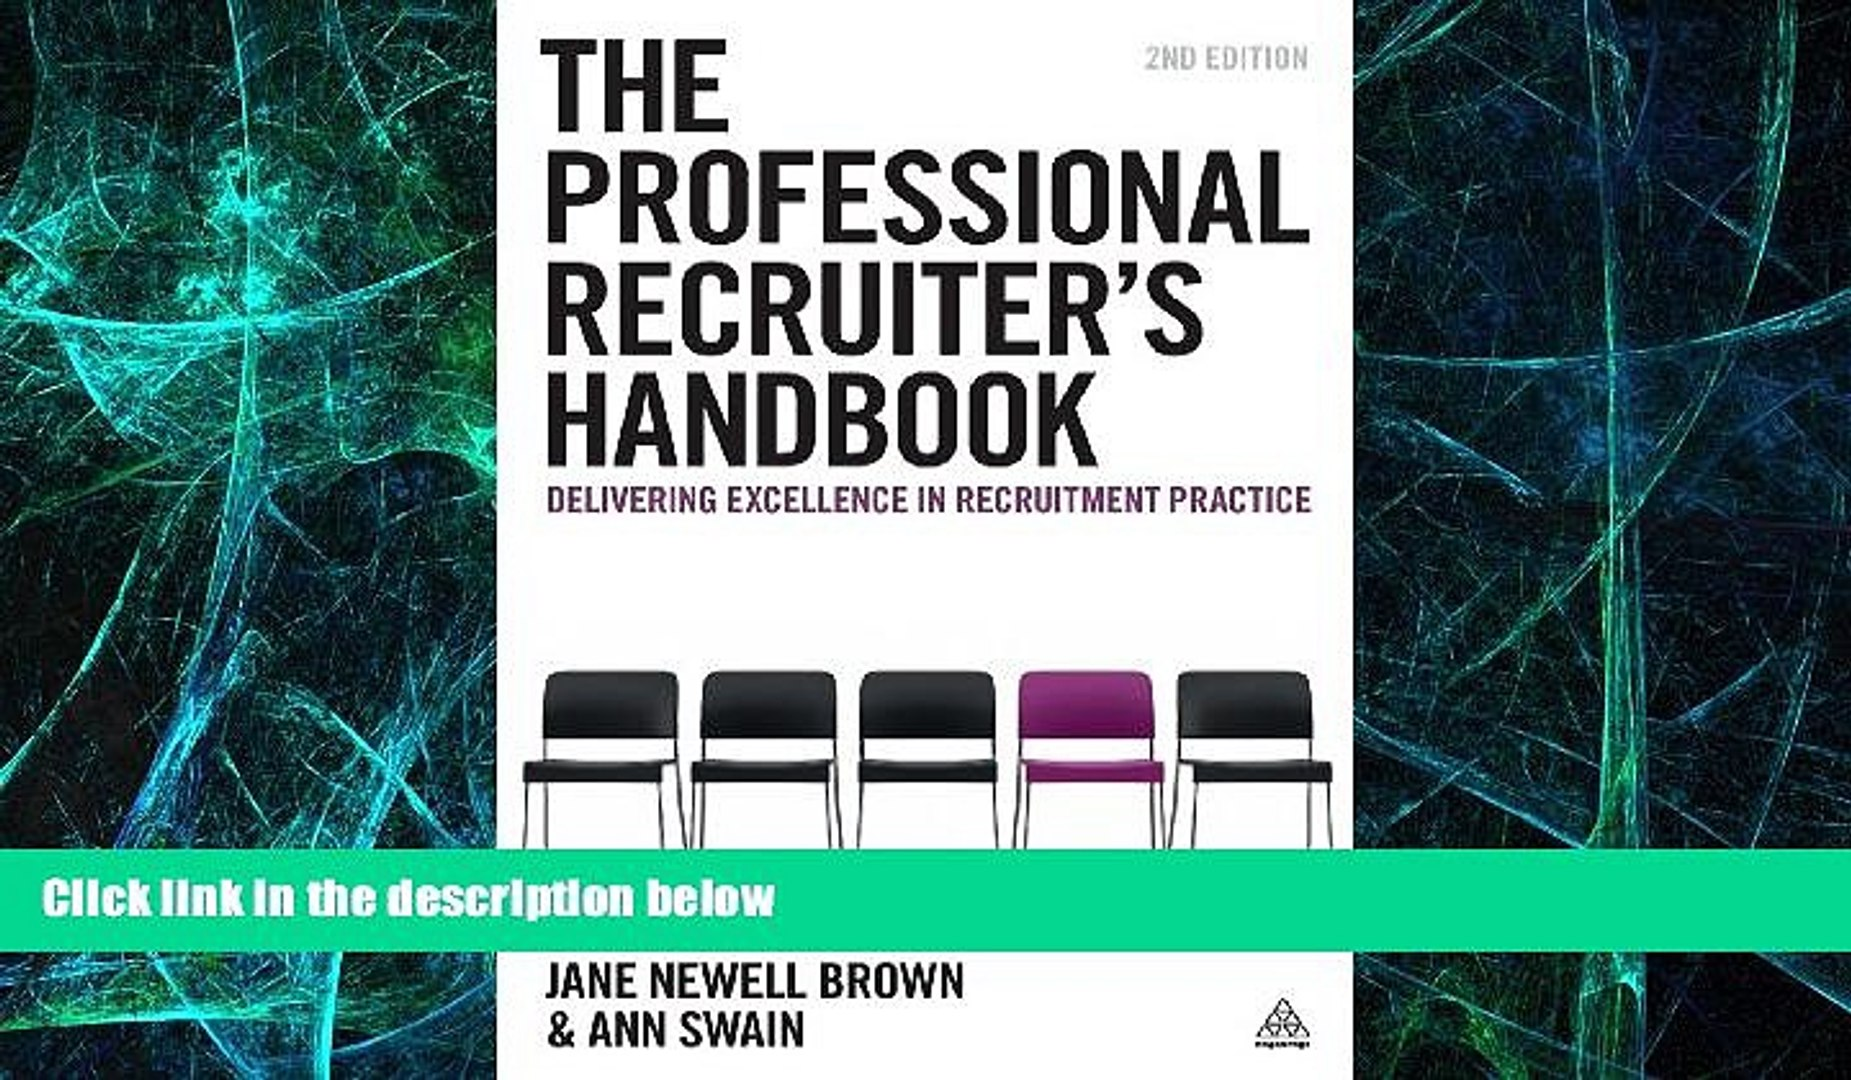 The Professional Recruiters Handbook: Delivering Excellence in Recruitment Practice